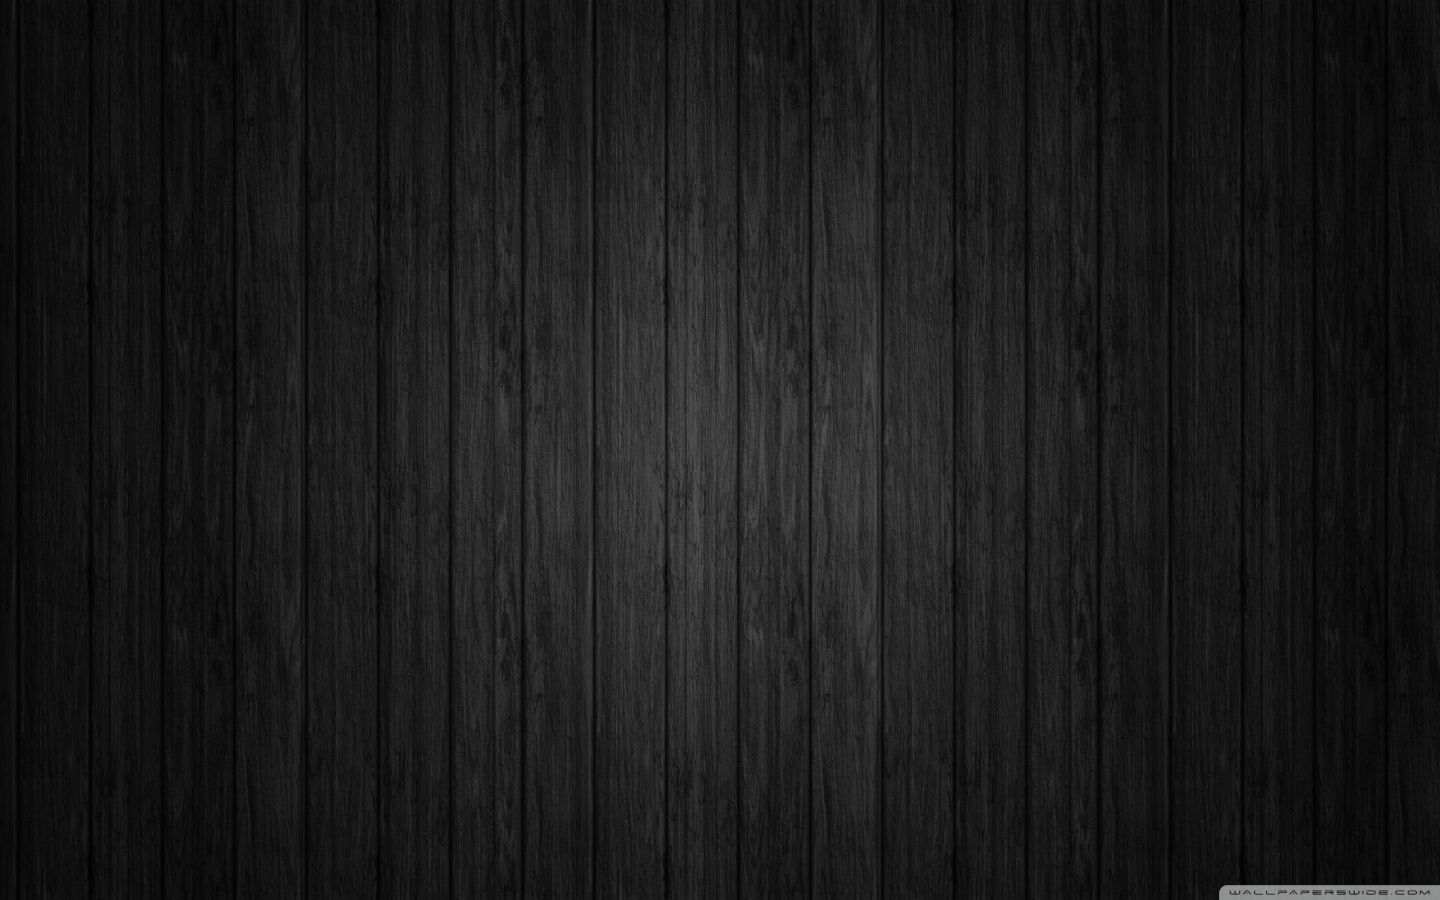 Best Black Wallpaper Hd 4k Free Downloads Black Iphone Background Black Wallpaper Iphone Dark Pure Black Wallpaper